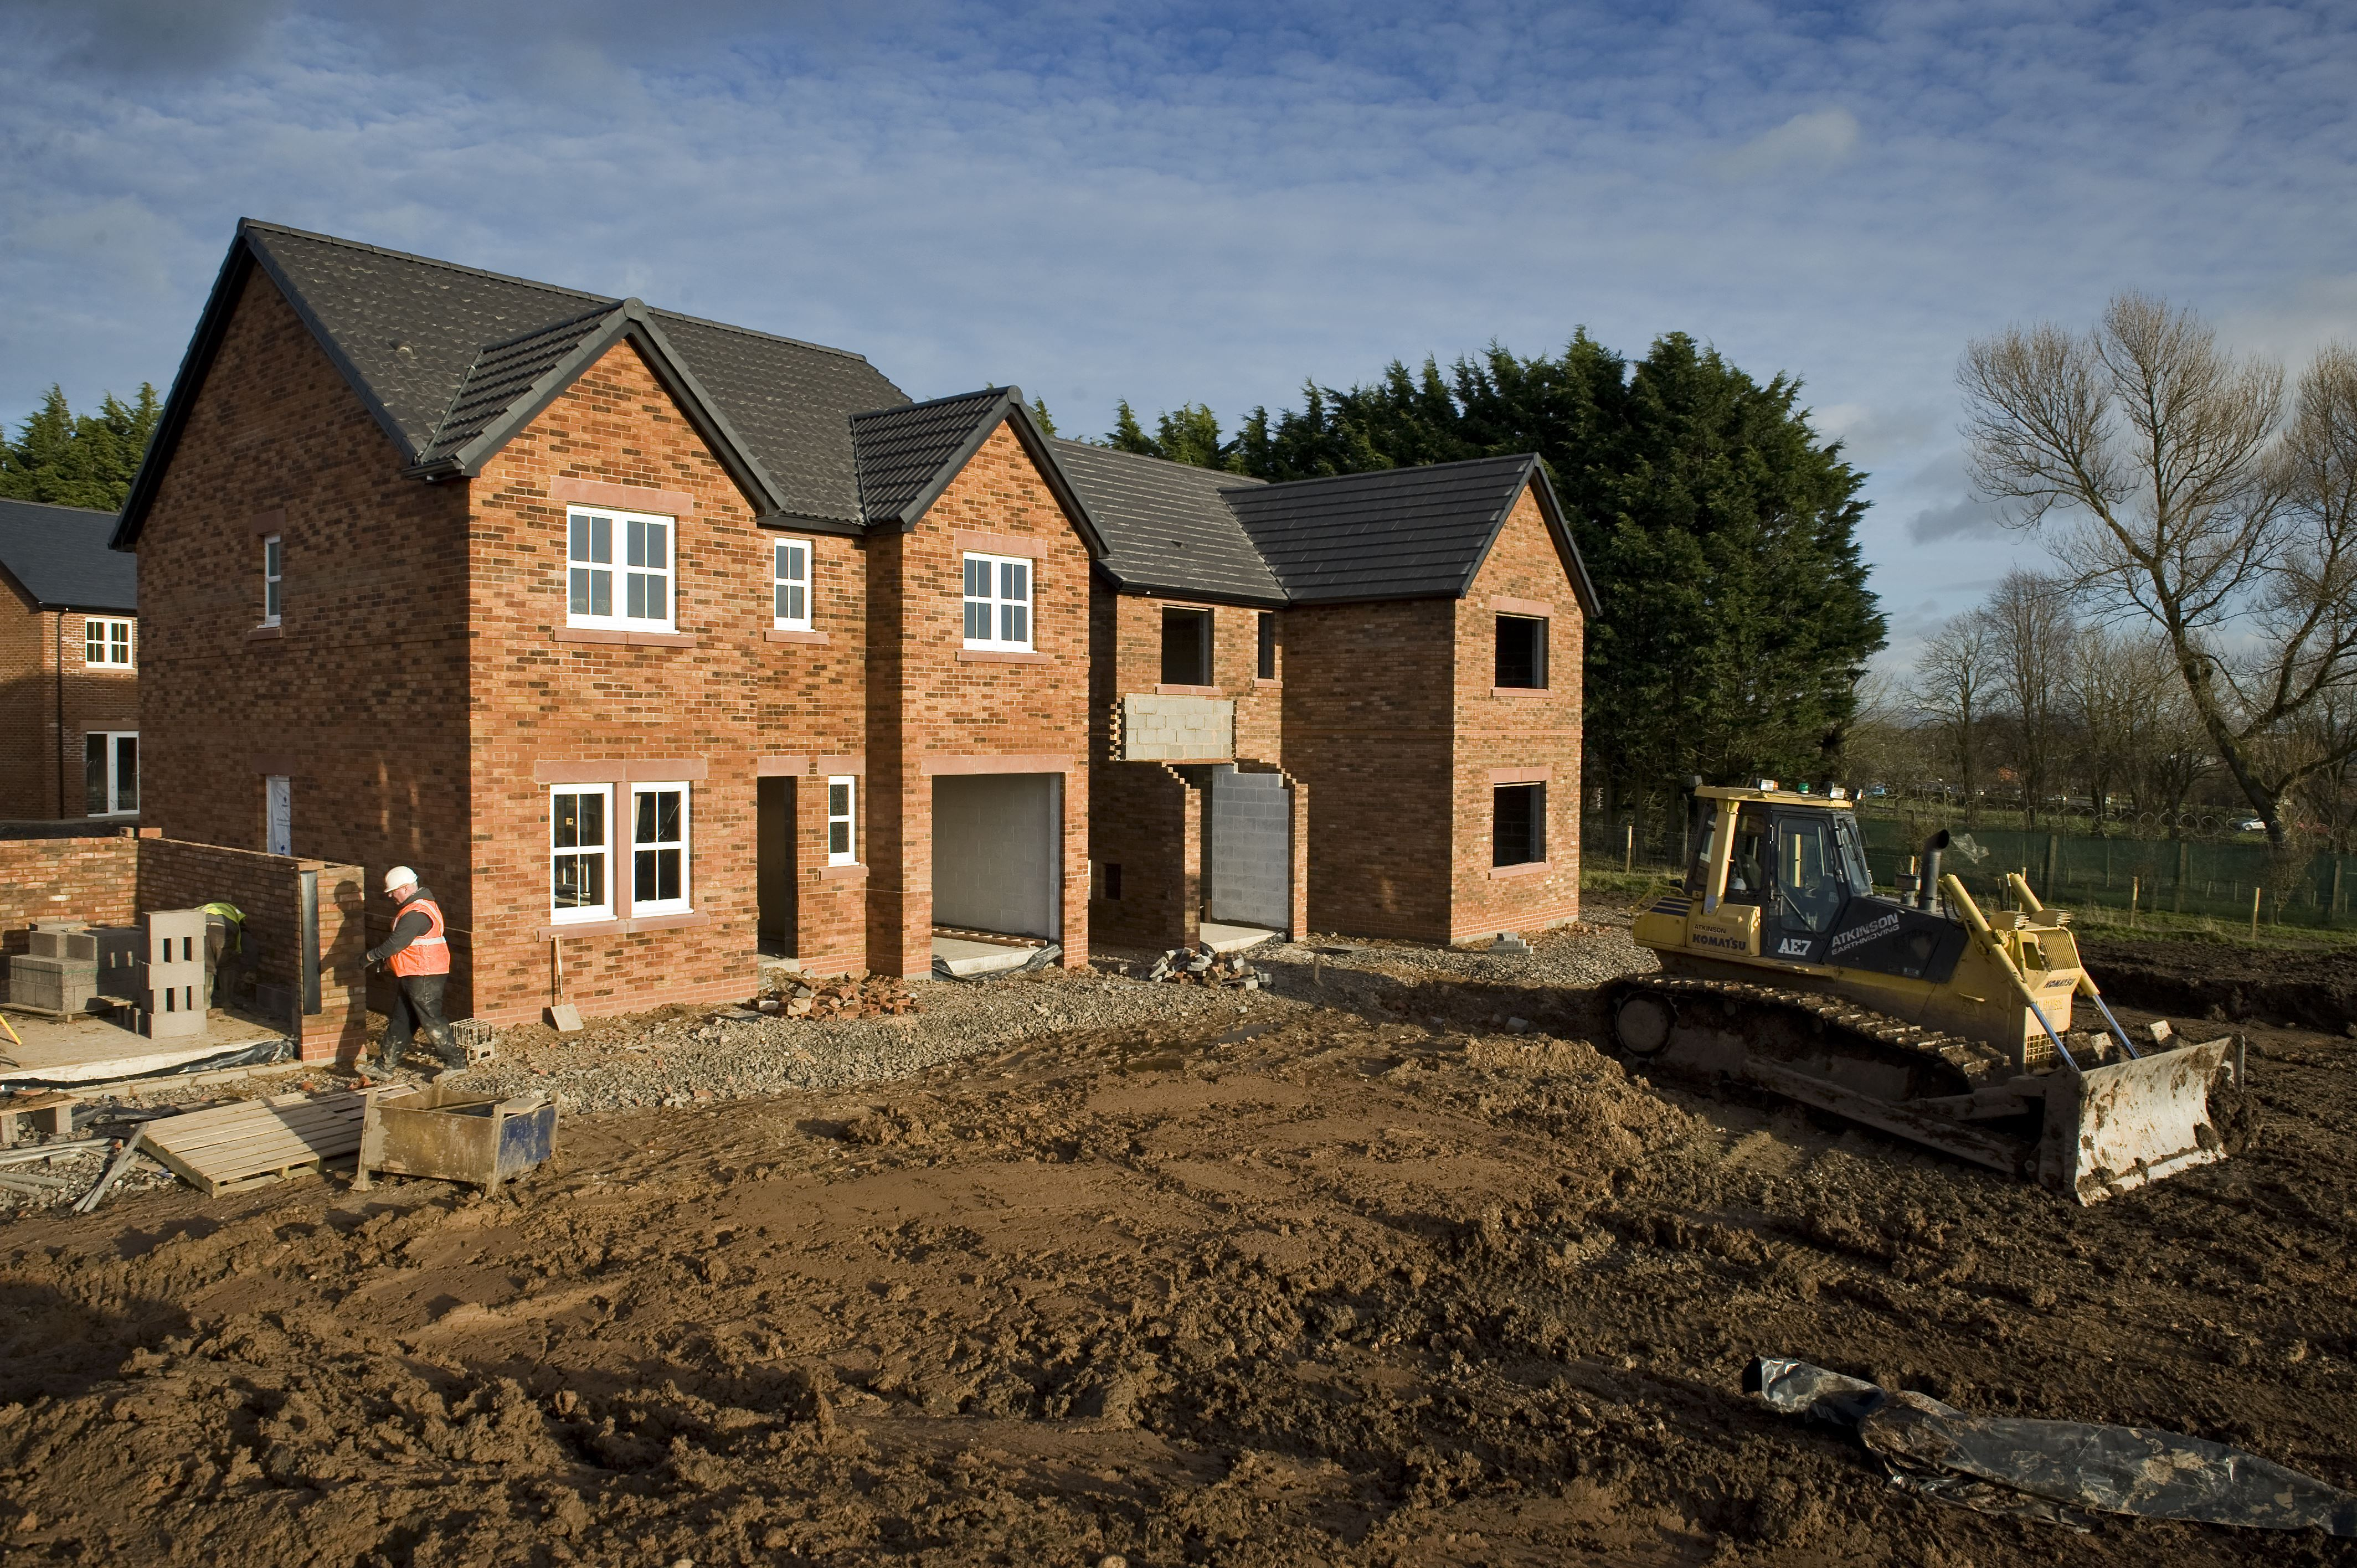 Opportunities for local businesses through fast growing house building company